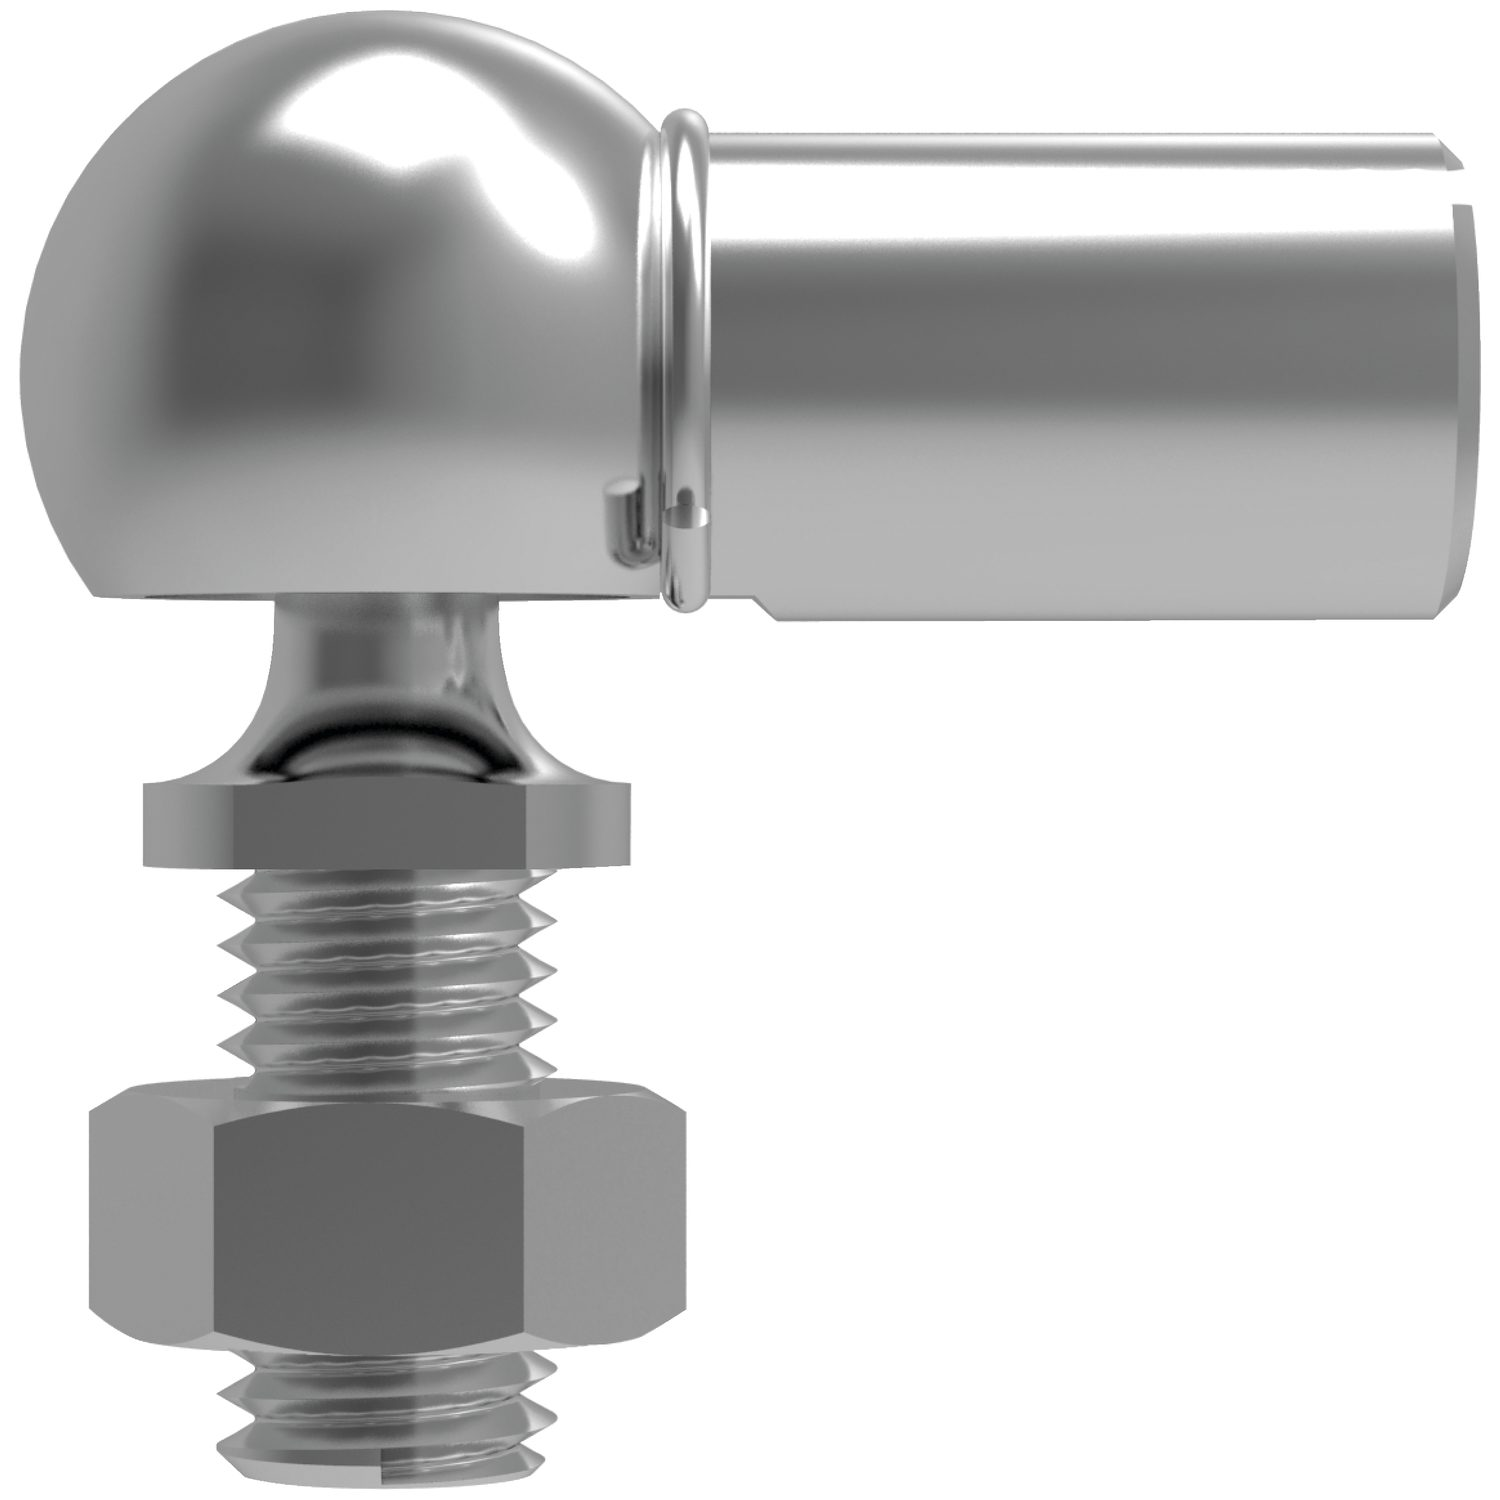 R3466 - Stainless Ball and Socket Joints